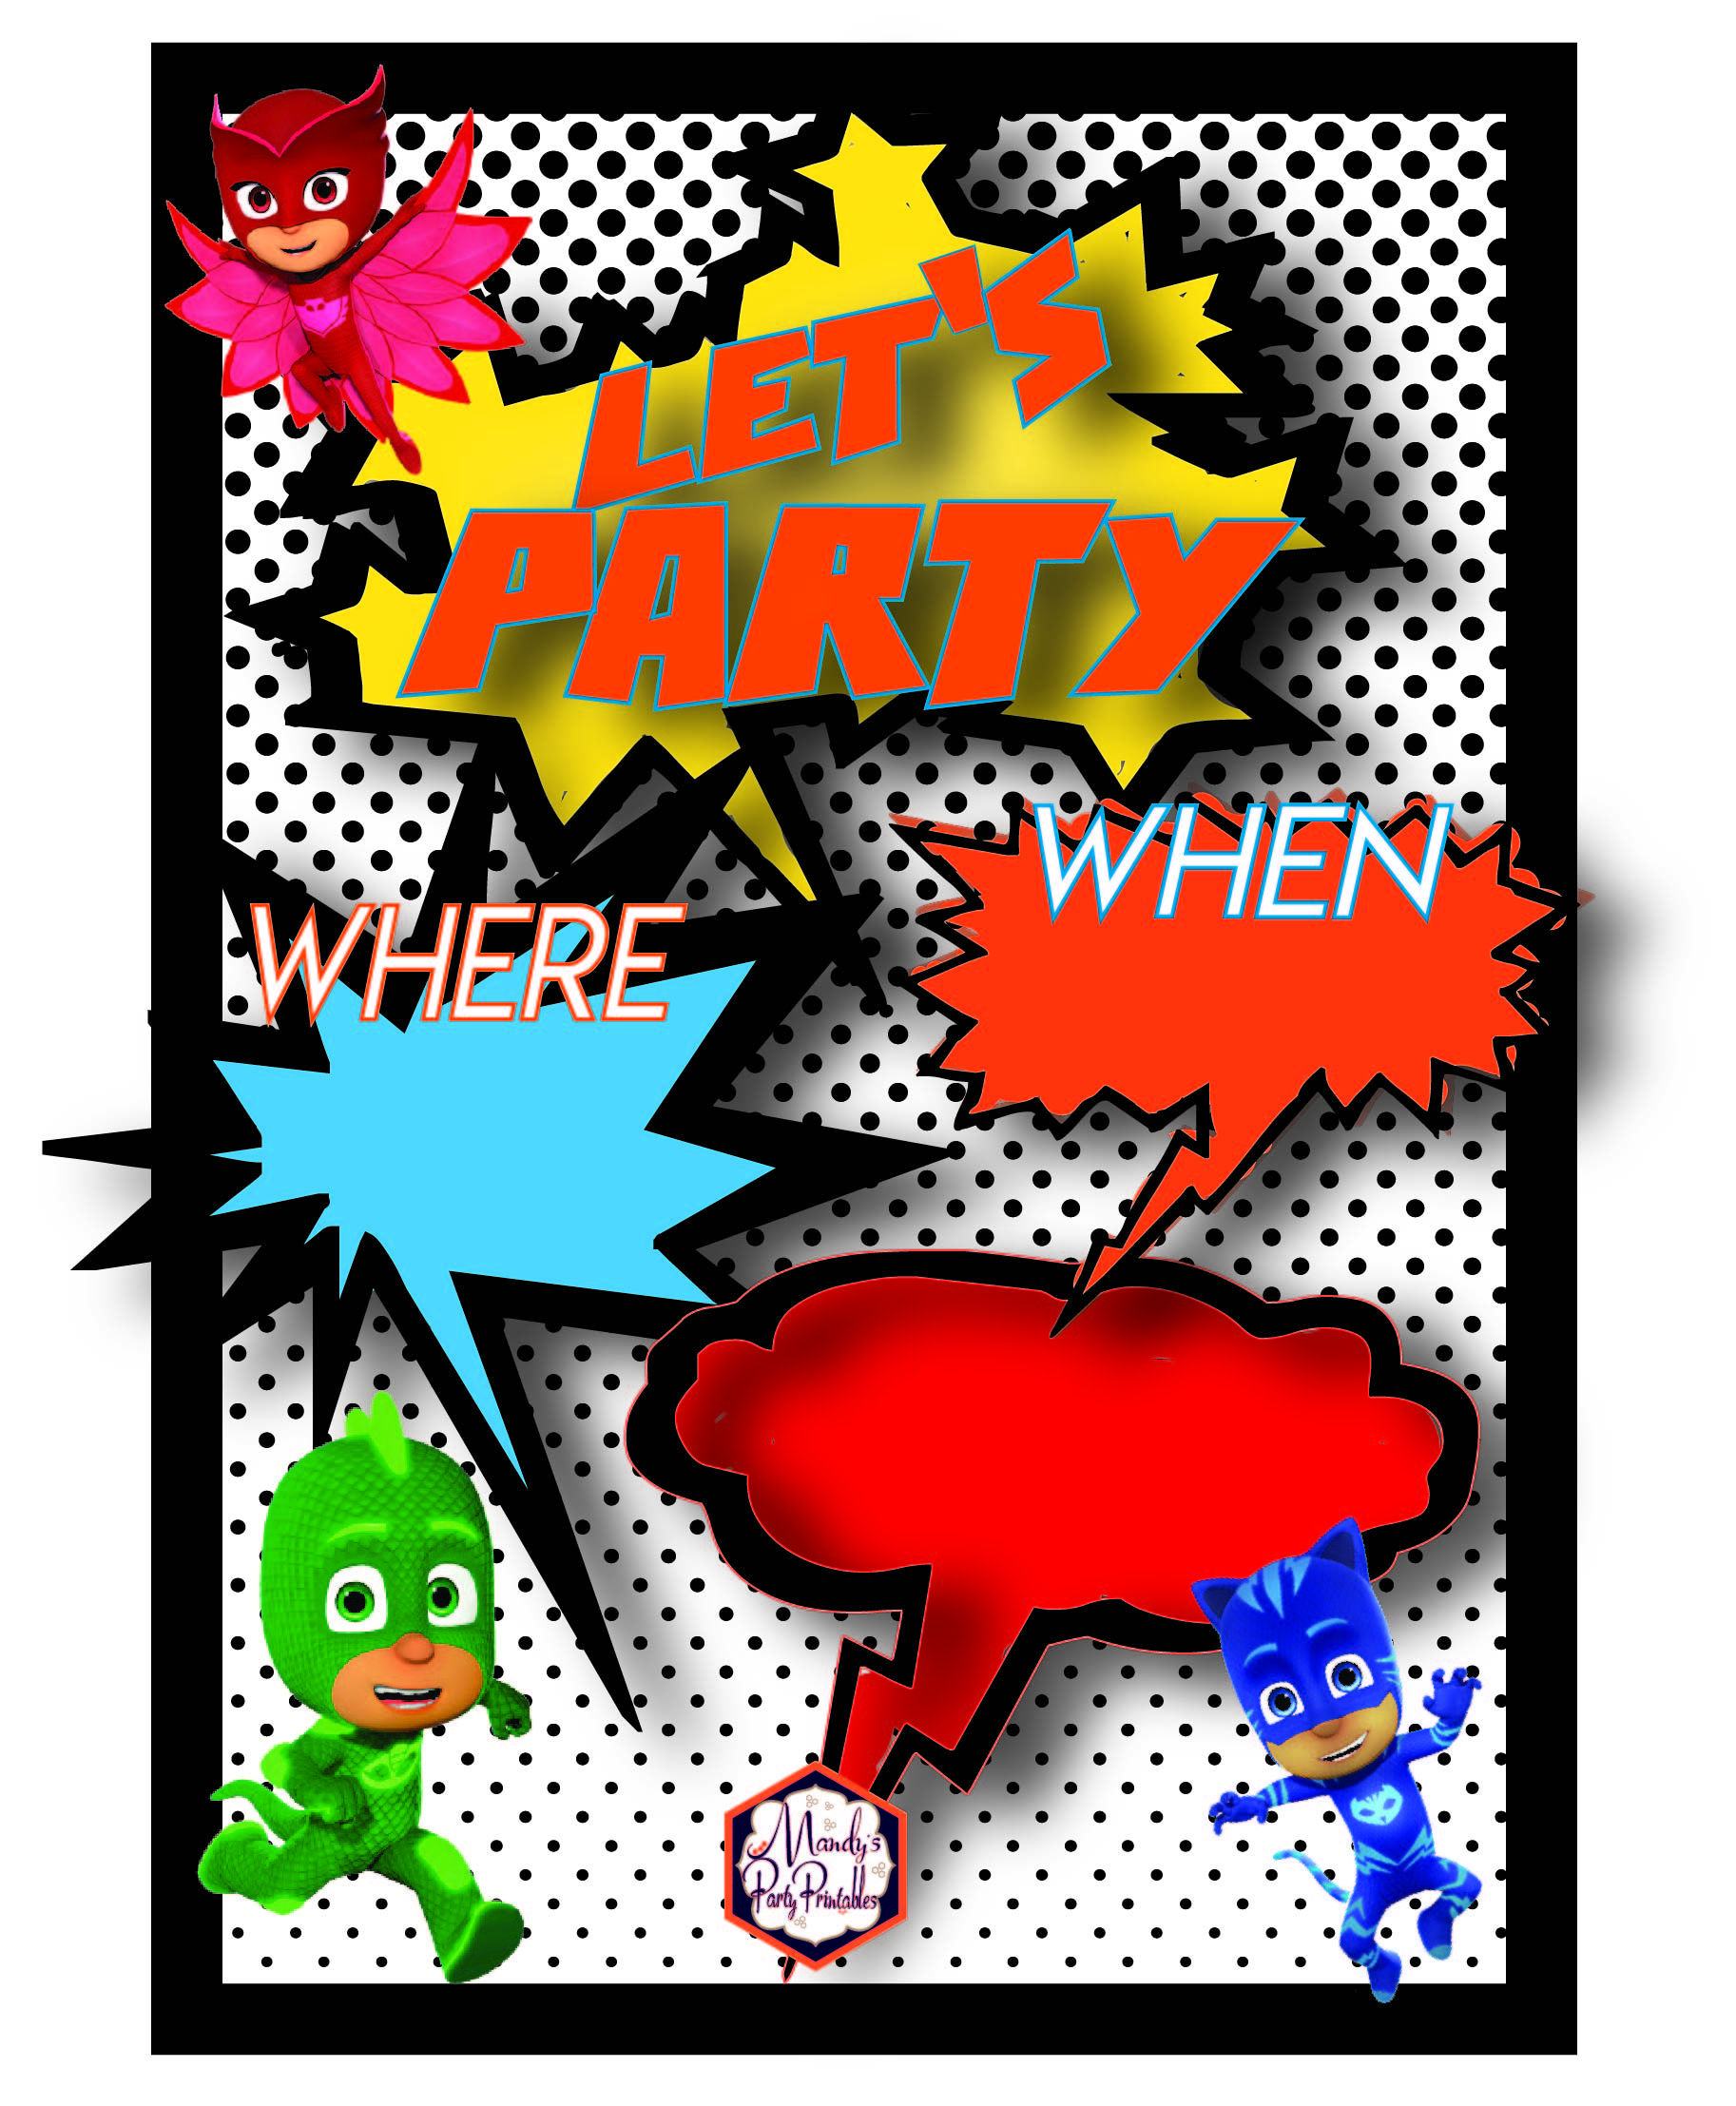 Free pj masks birthday party printables free pj masks birthday party printables stopboris Gallery